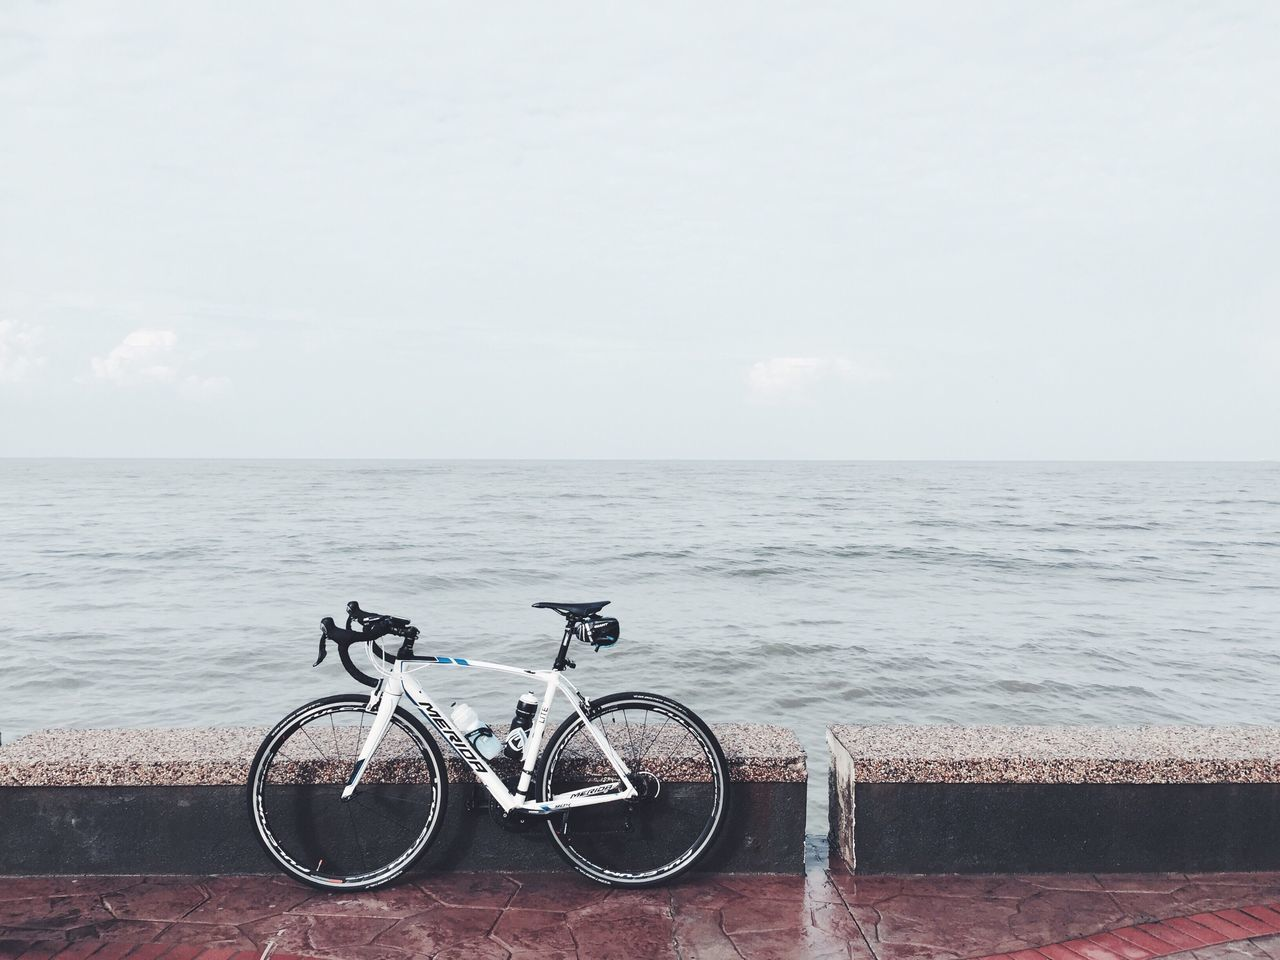 sea, horizon over water, water, sky, no people, bicycle, nature, outdoors, scenics, day, beach, beauty in nature